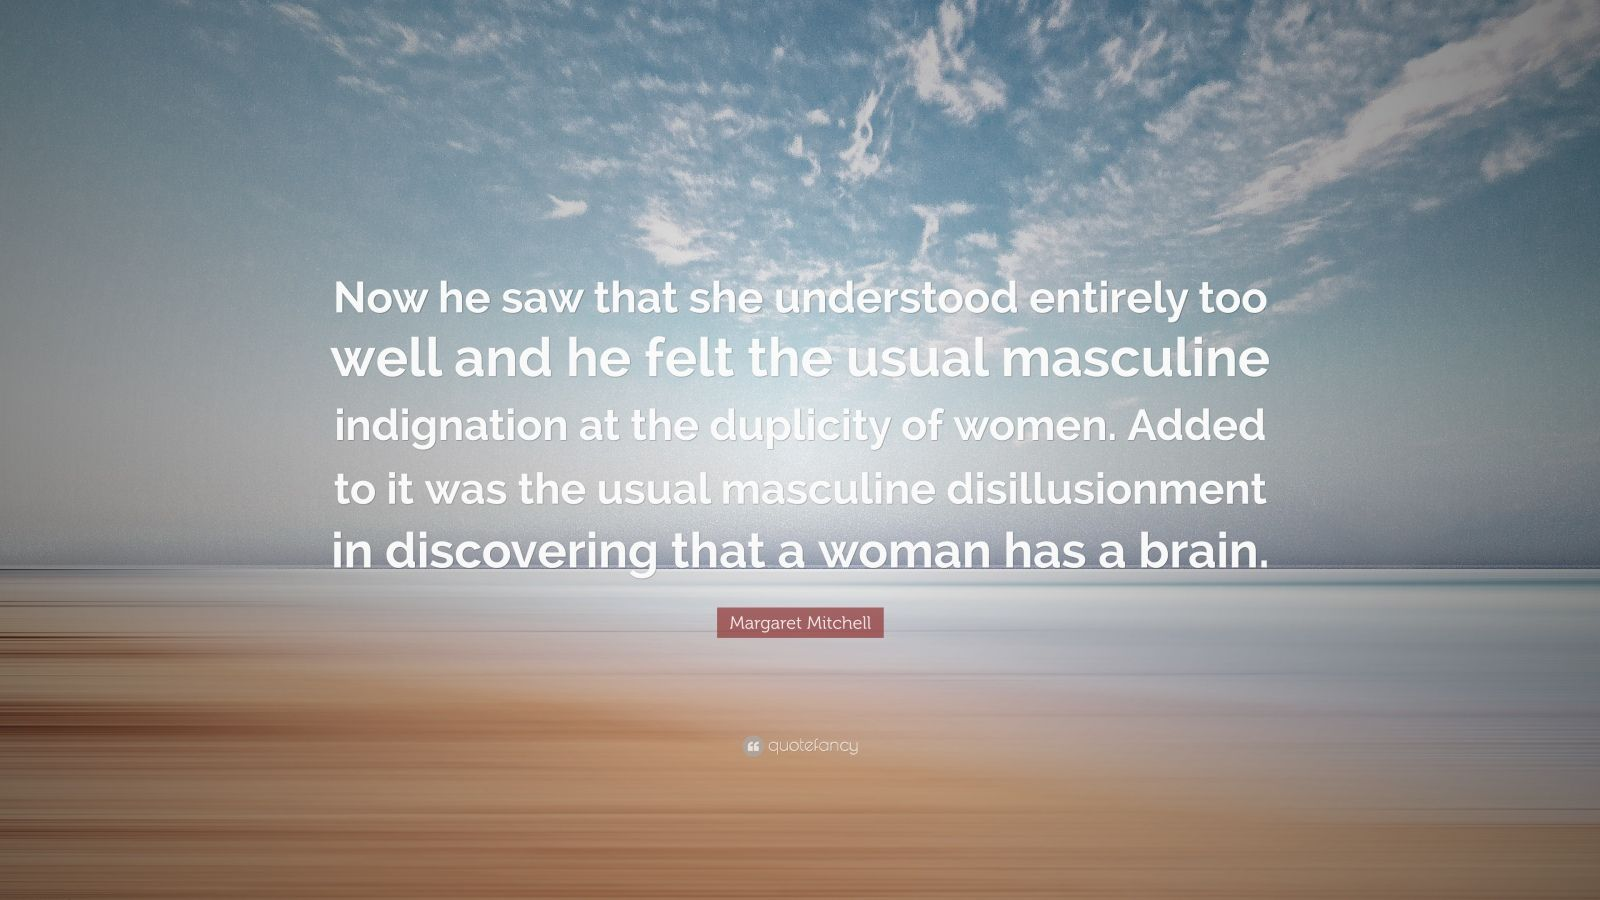 """Margaret Mitchell Quote: """"Now he saw that she understood entirely too well and he felt the usual masculine indignation at the duplicity of women. Added to it was the usual masculine disillusionment in discovering that a woman has a brain."""""""